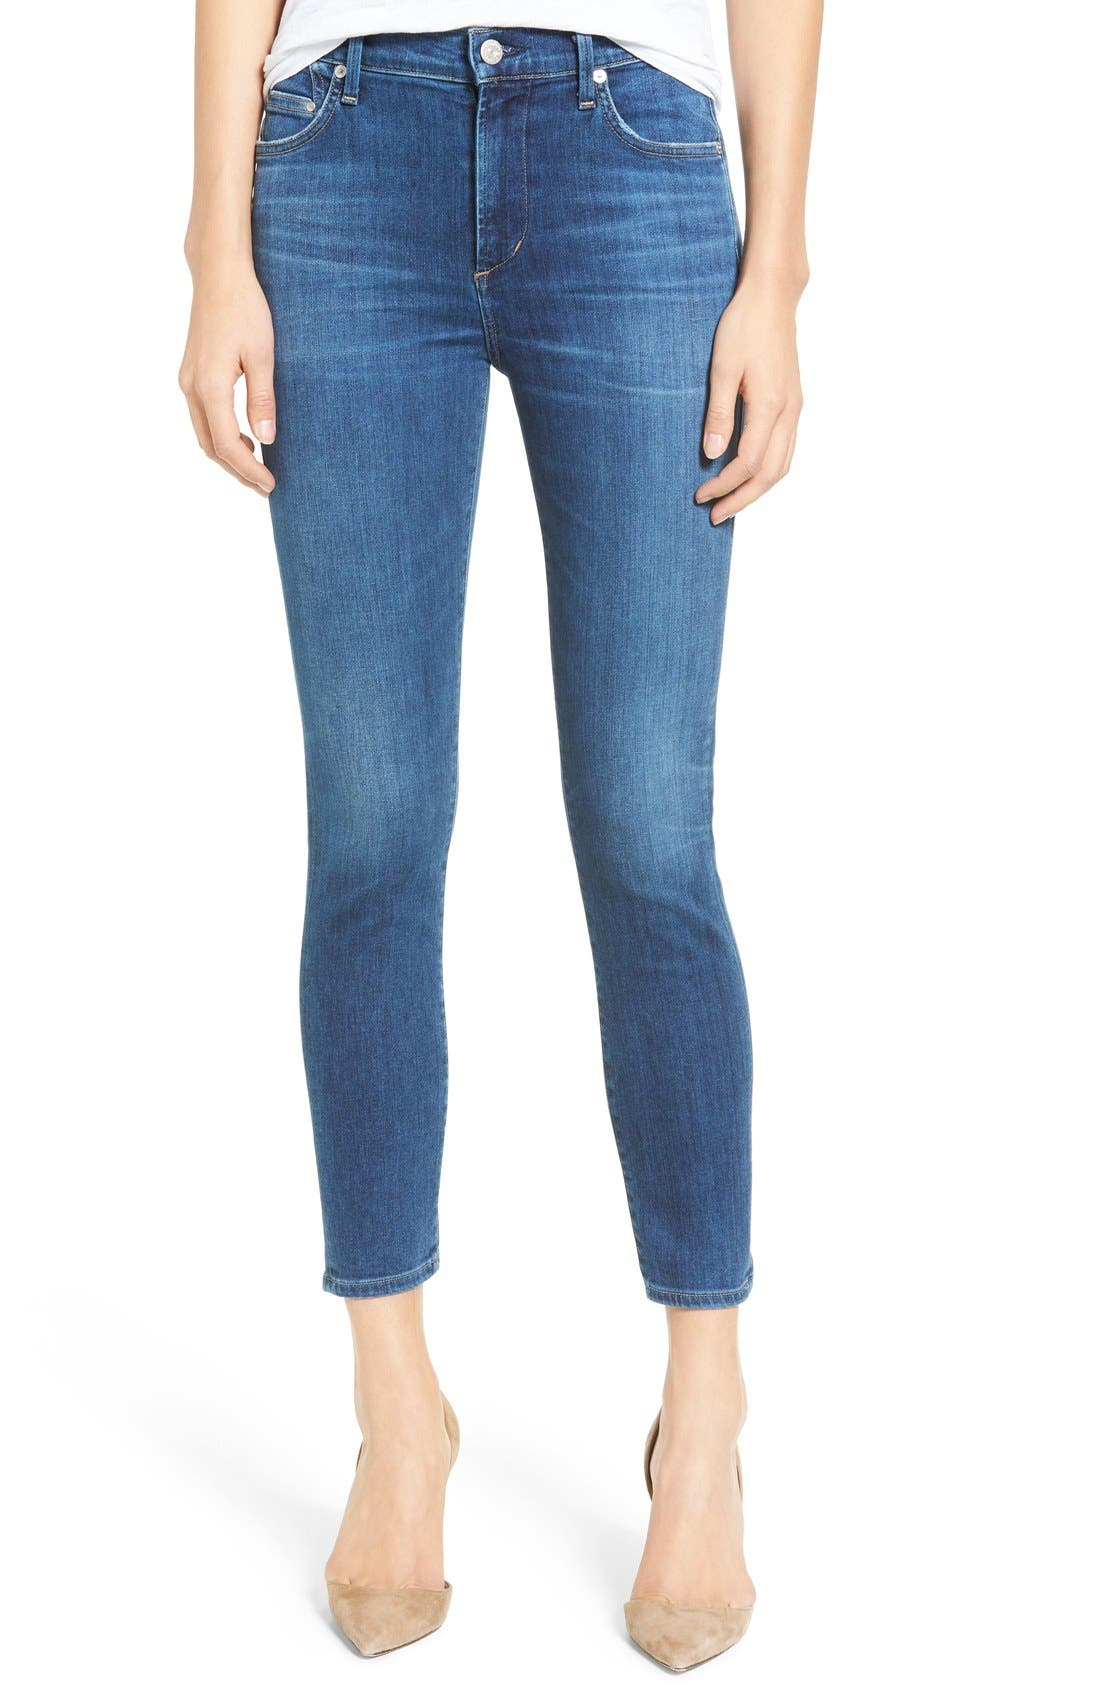 Rocket High Waist Crop Skinny Jeans,                             Alternate thumbnail 7, color,                             430